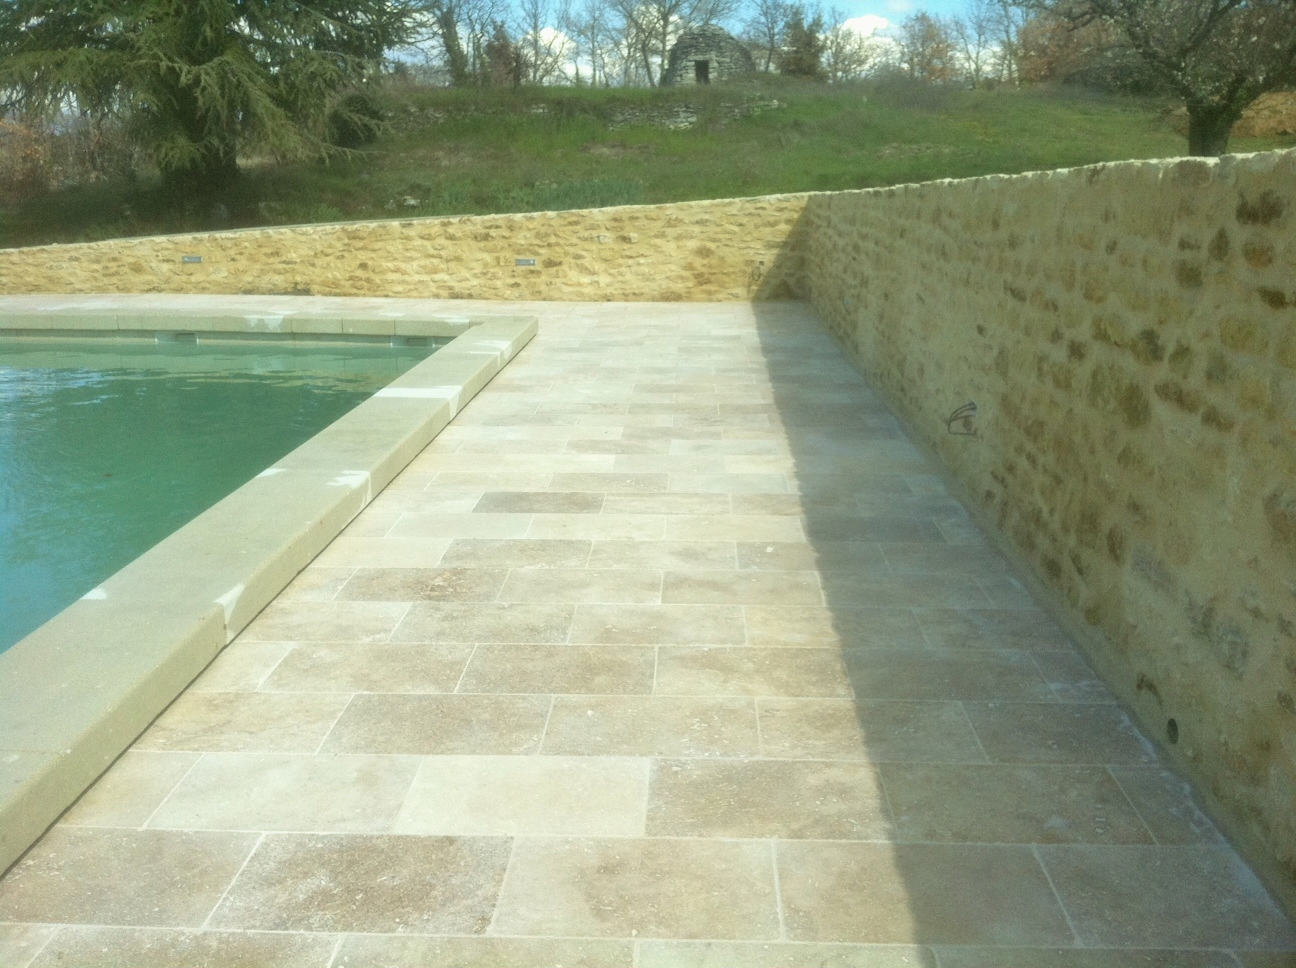 Terrasse travertin hydrofuge et imperm abilisant blog for Carrelage exterieur travertin